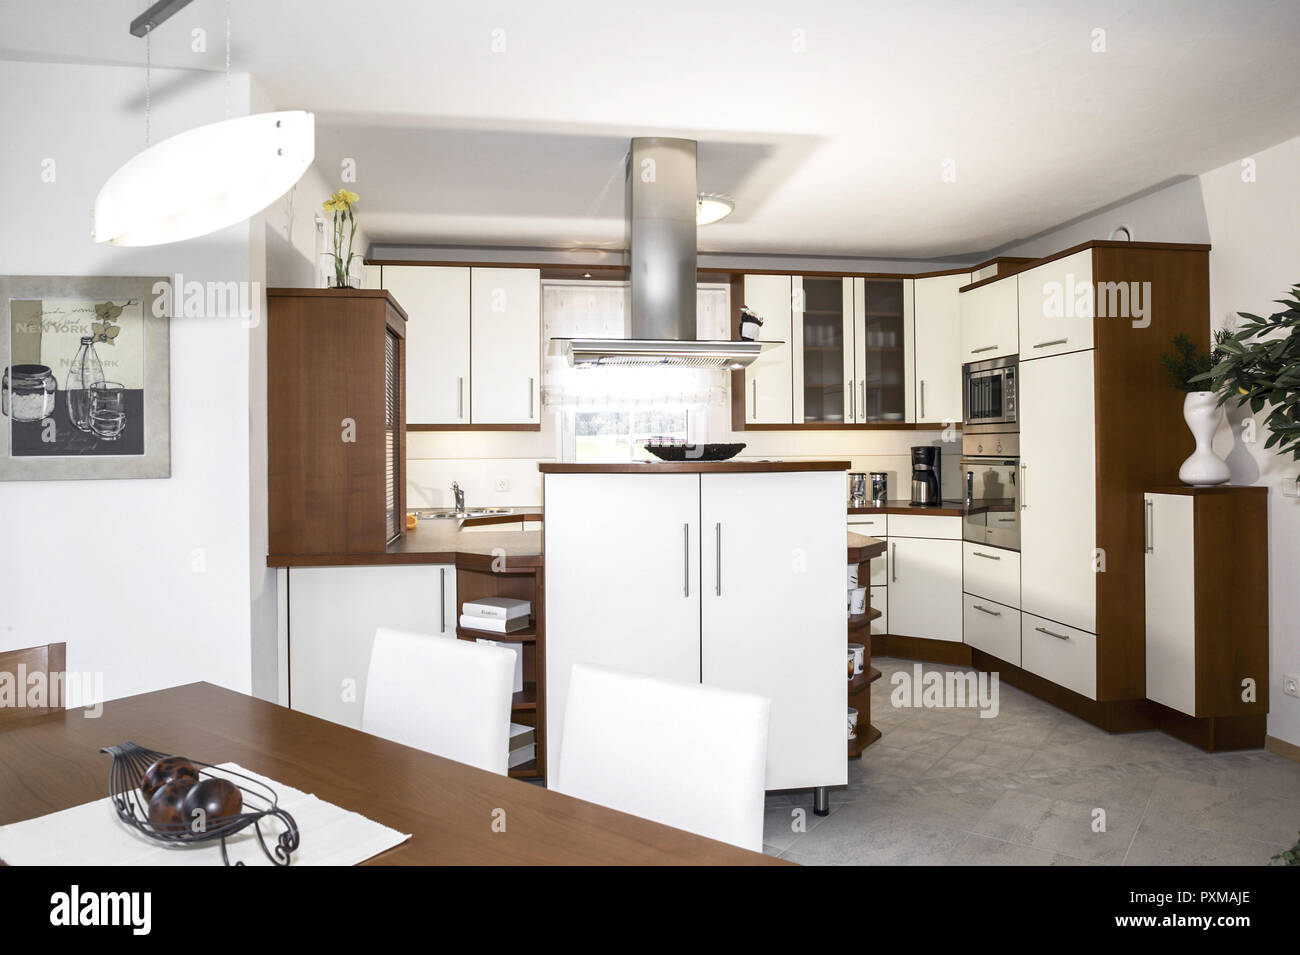 Kueche Interior Design Resources Infr Stock Photos Infr Stock Images Alamy